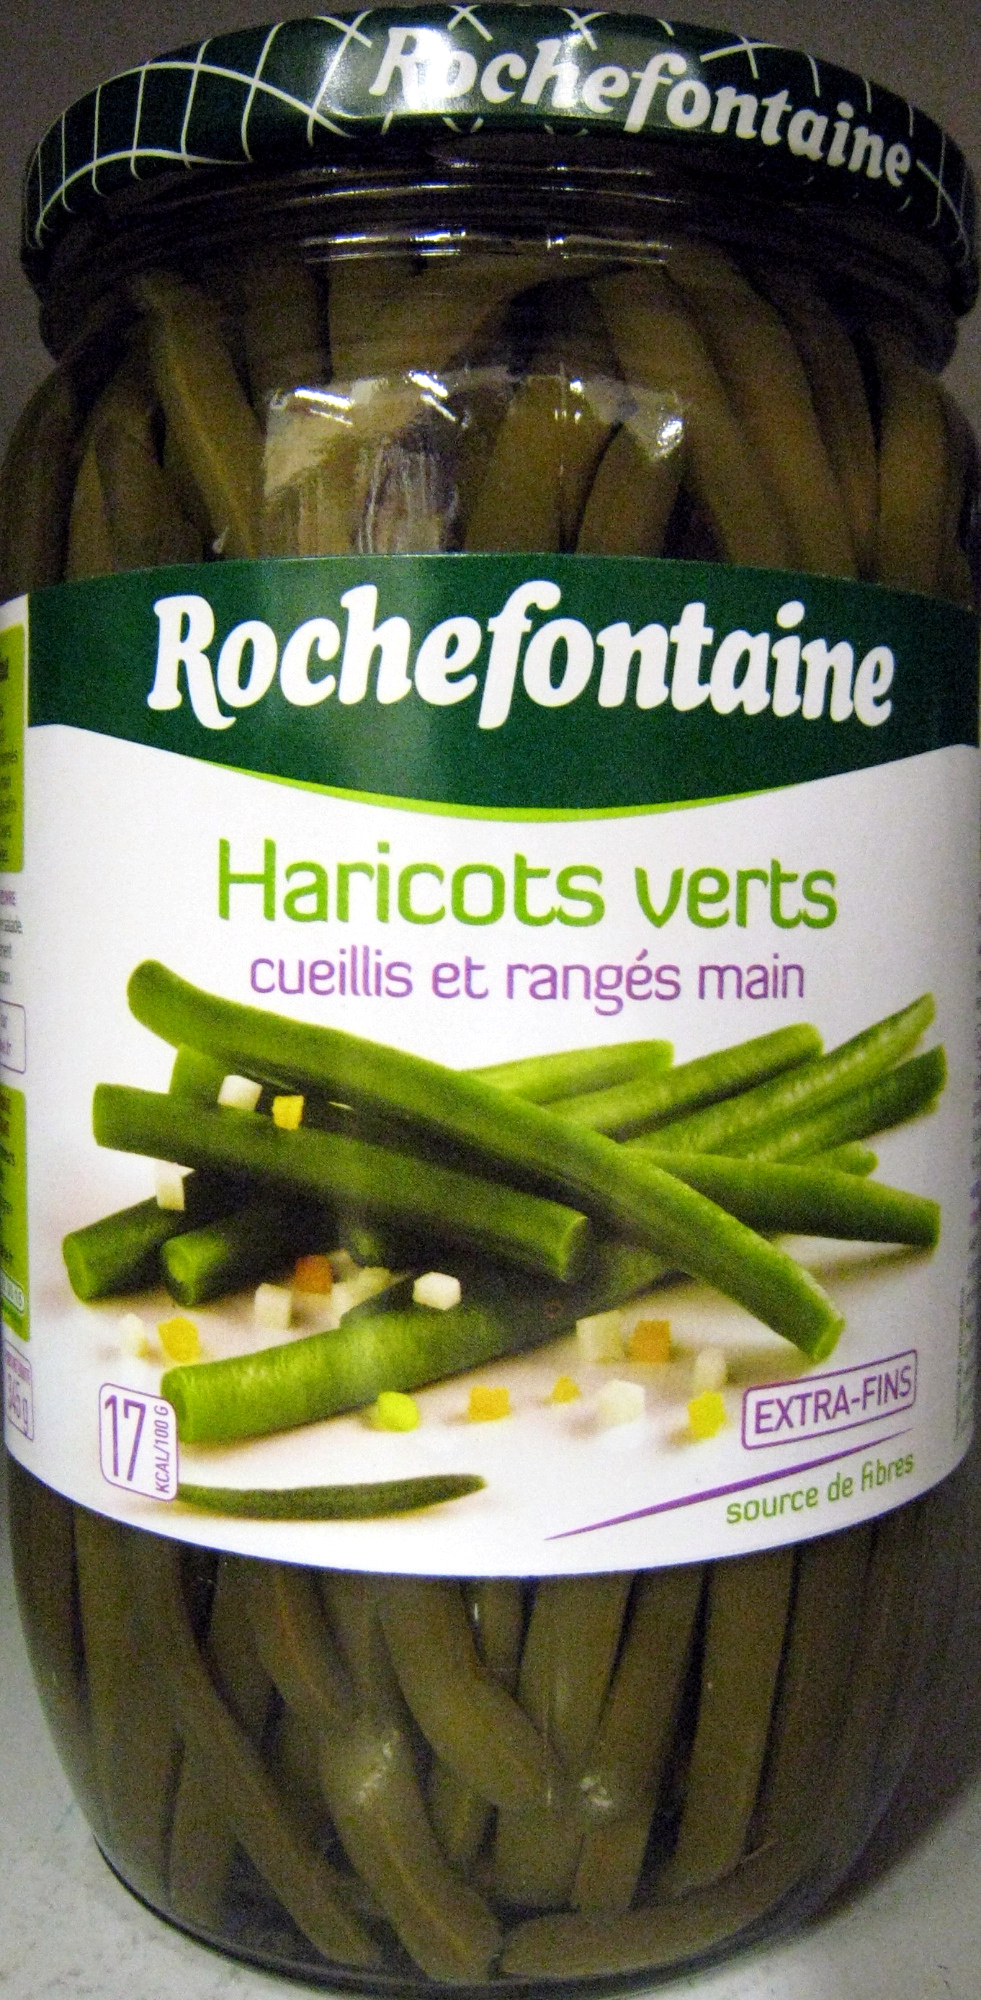 Haricots verts extra fins - 660 g - Rochefontaine - Produit